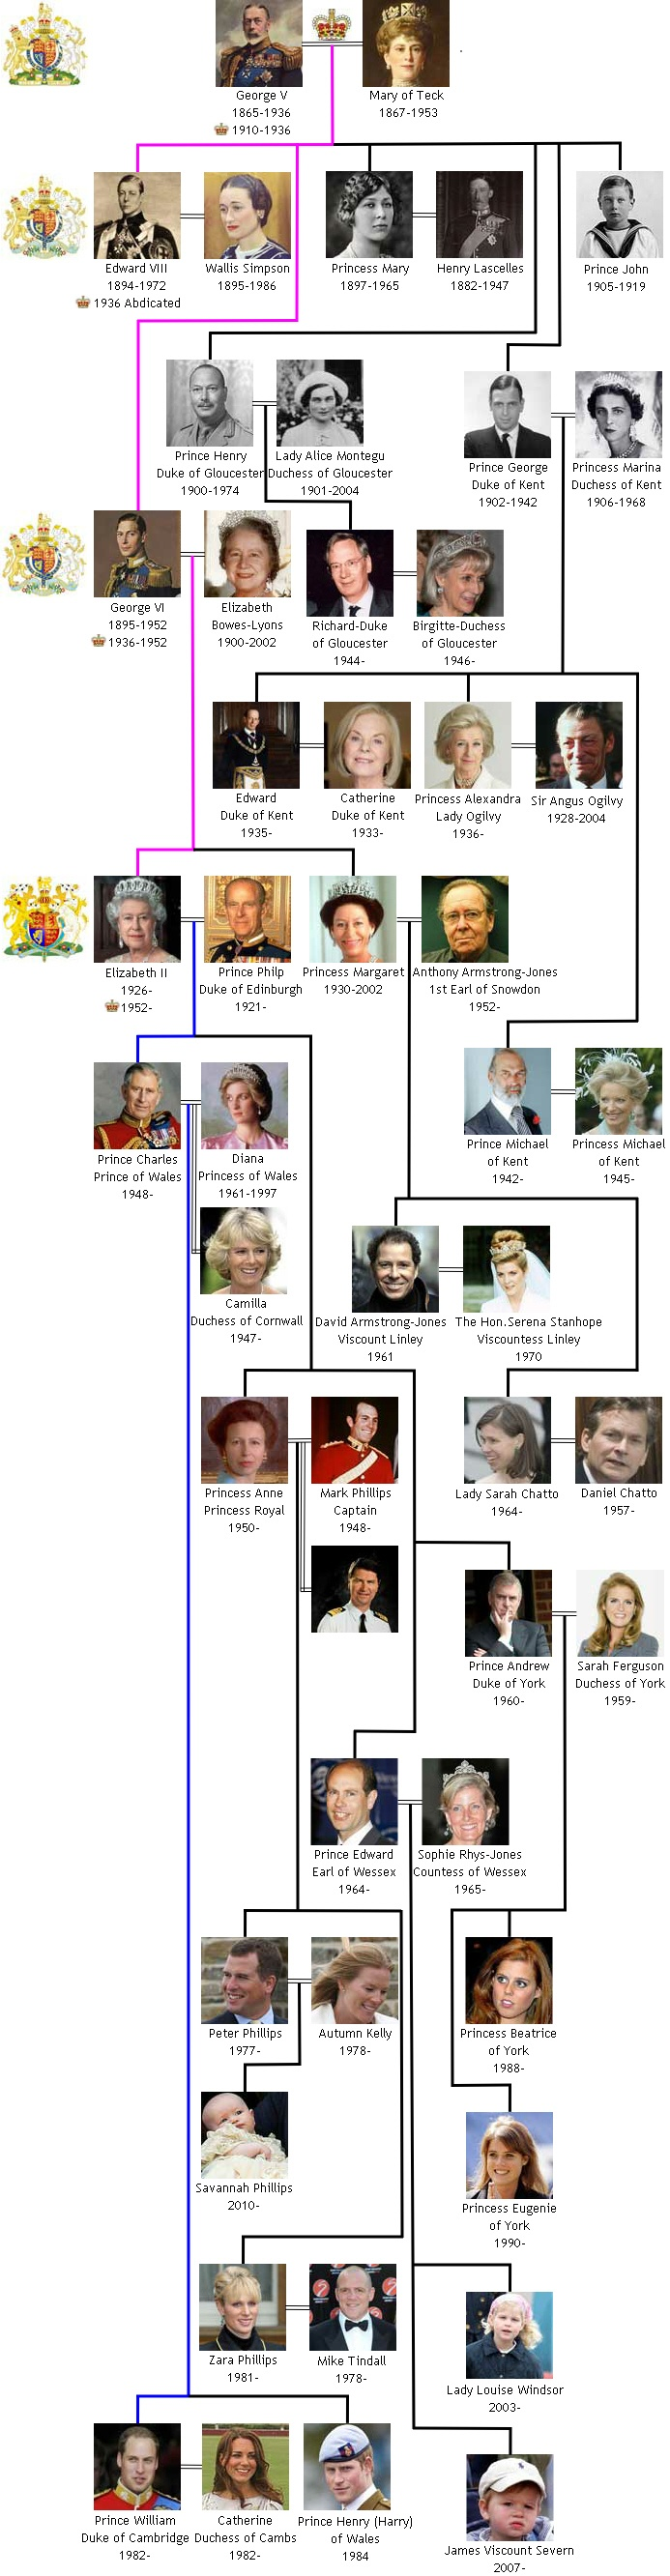 House of Windsor family tree